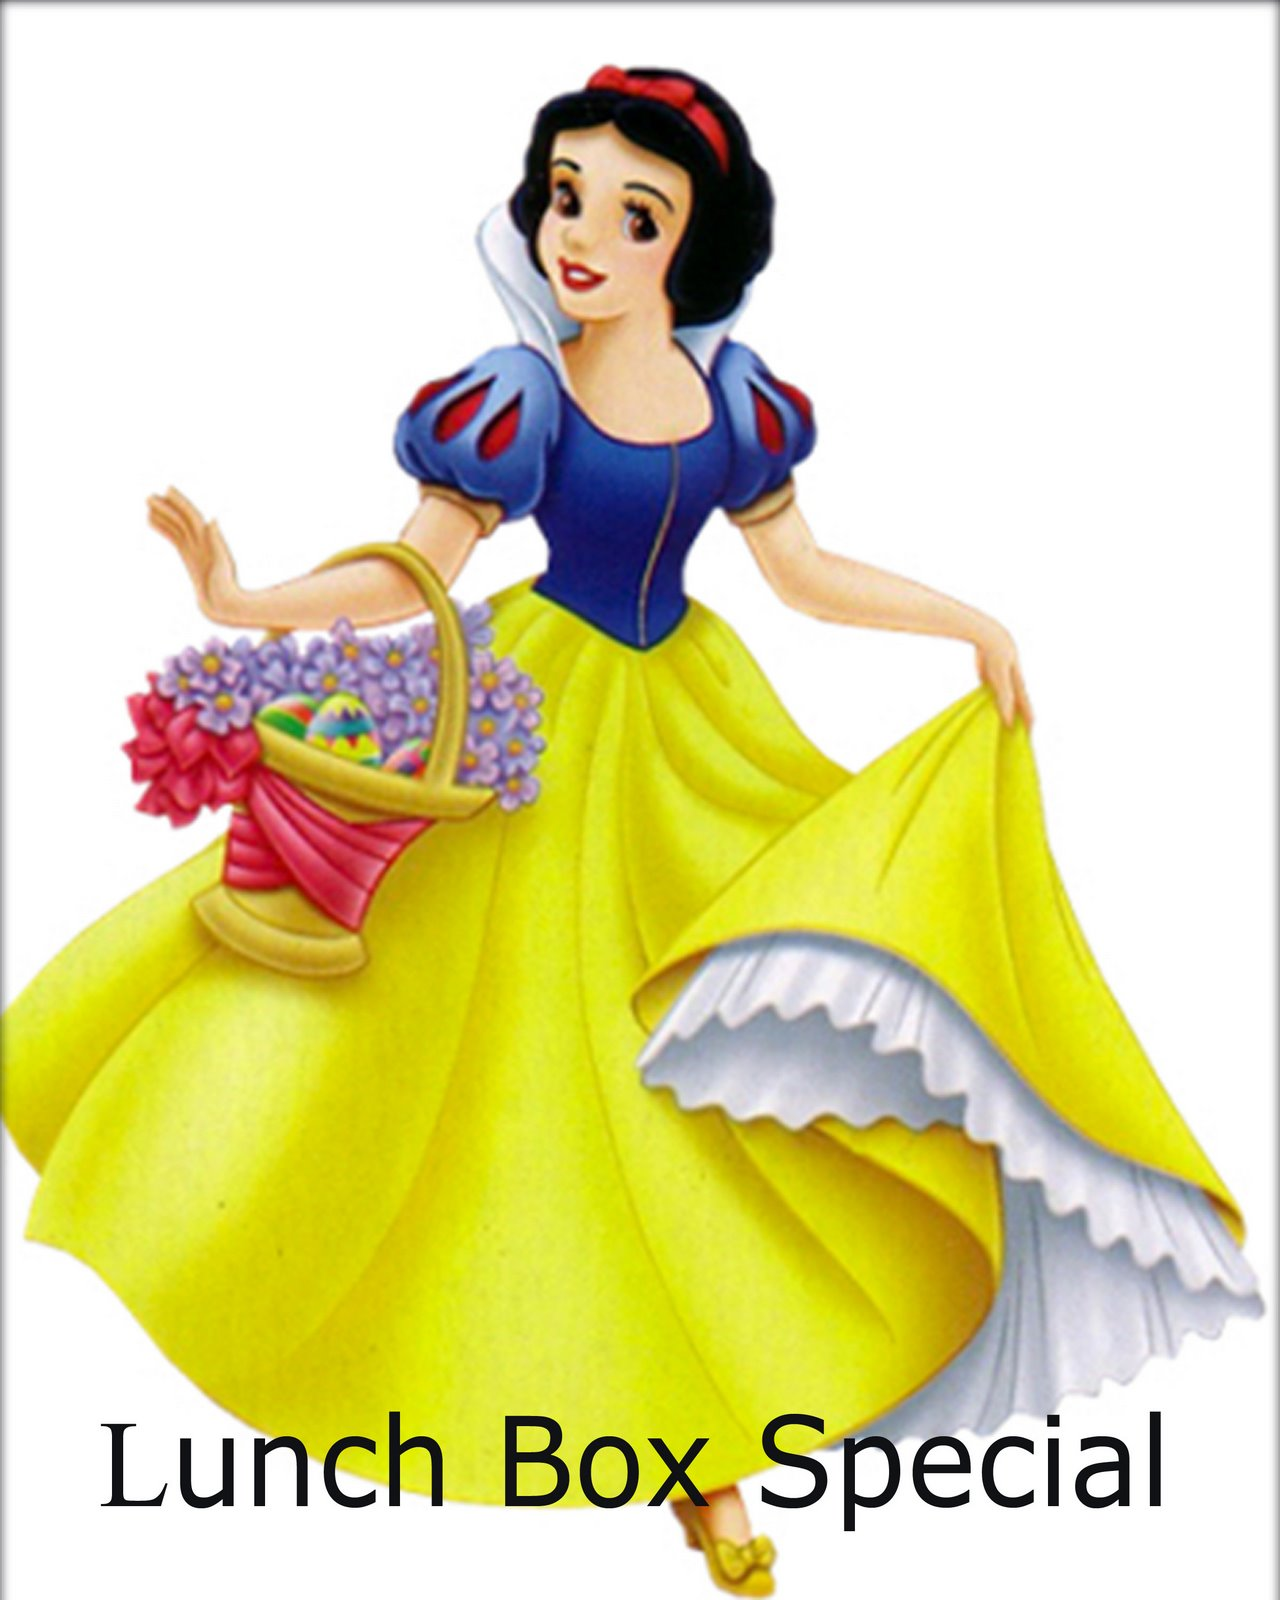 Snow White Disney Character Free Image